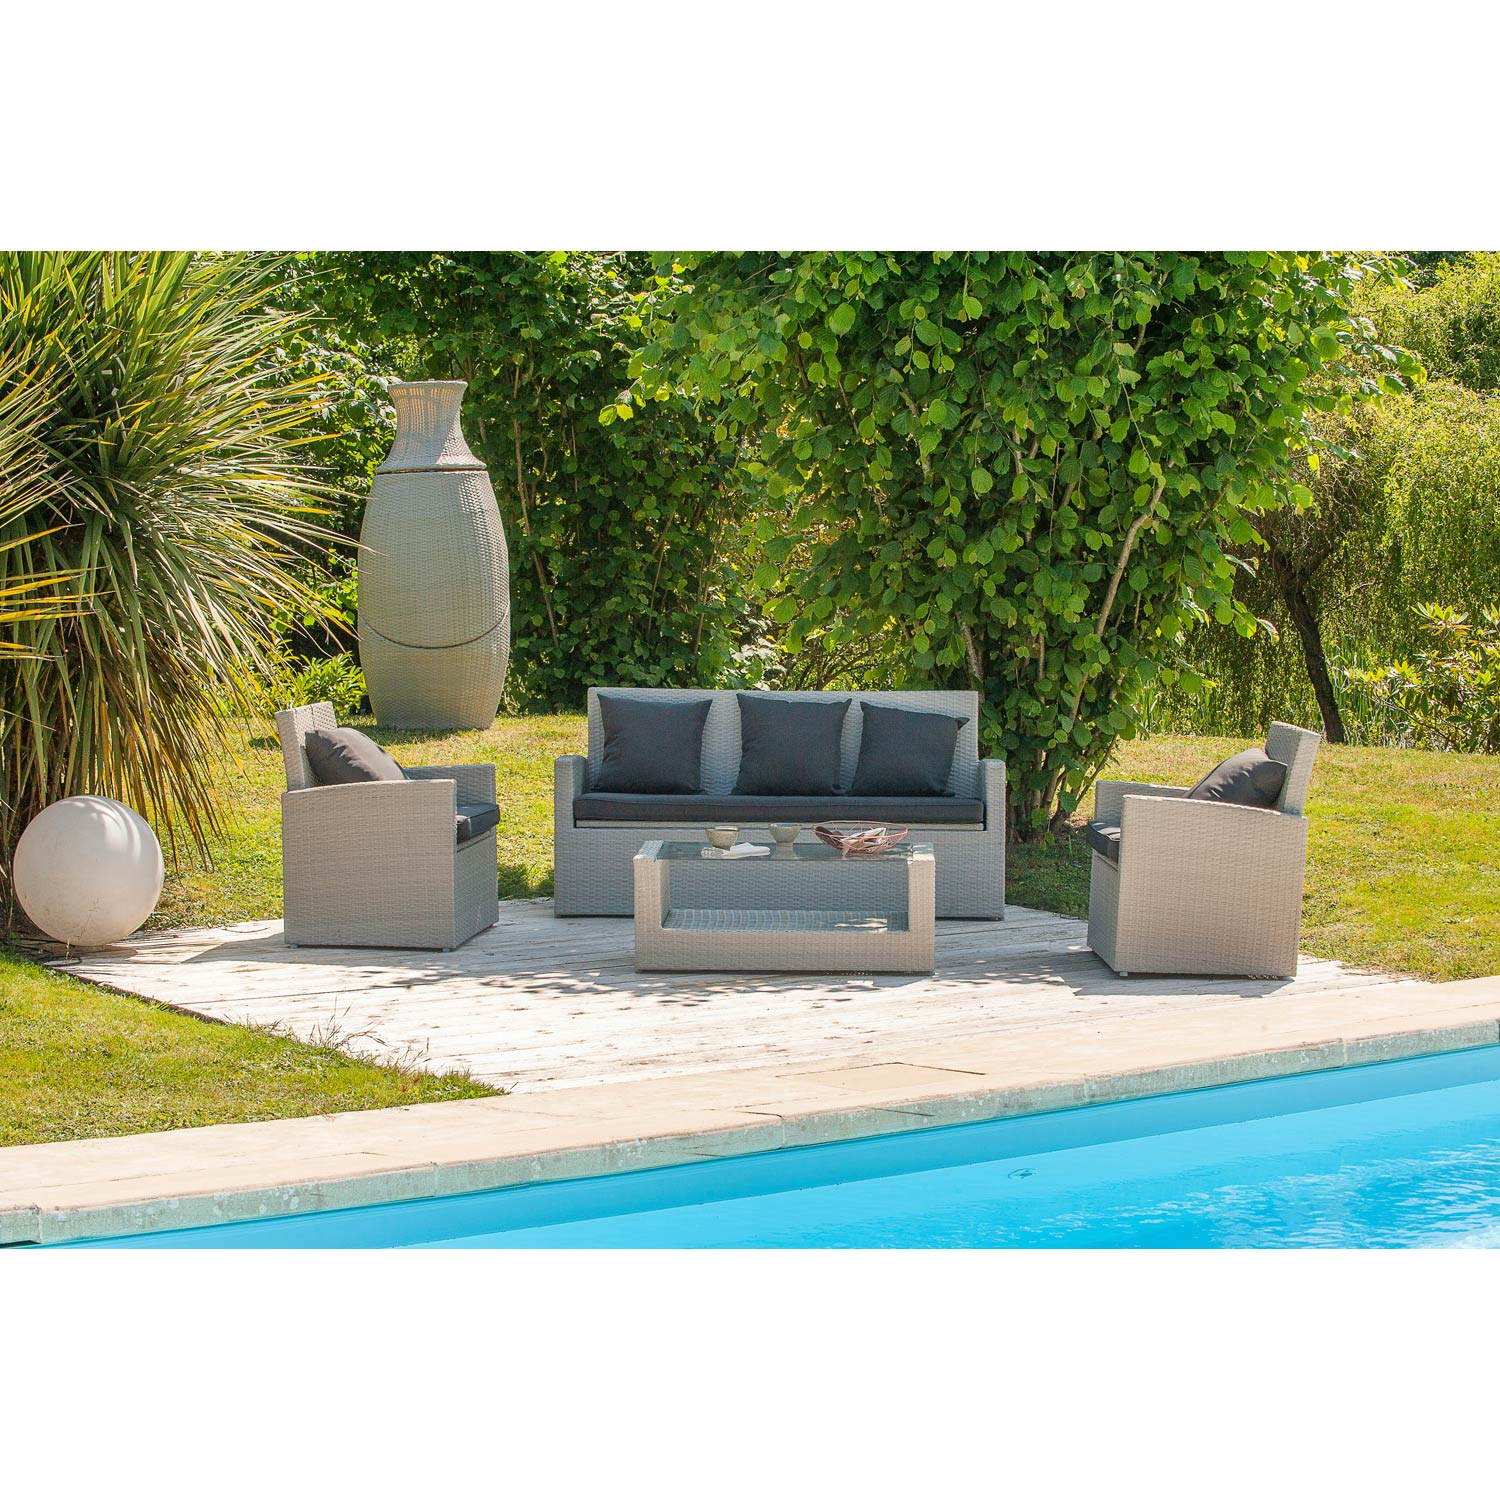 salon bas de jardin portovecchio r sine tress e gris table canap 2 fauteuils leroy merlin. Black Bedroom Furniture Sets. Home Design Ideas